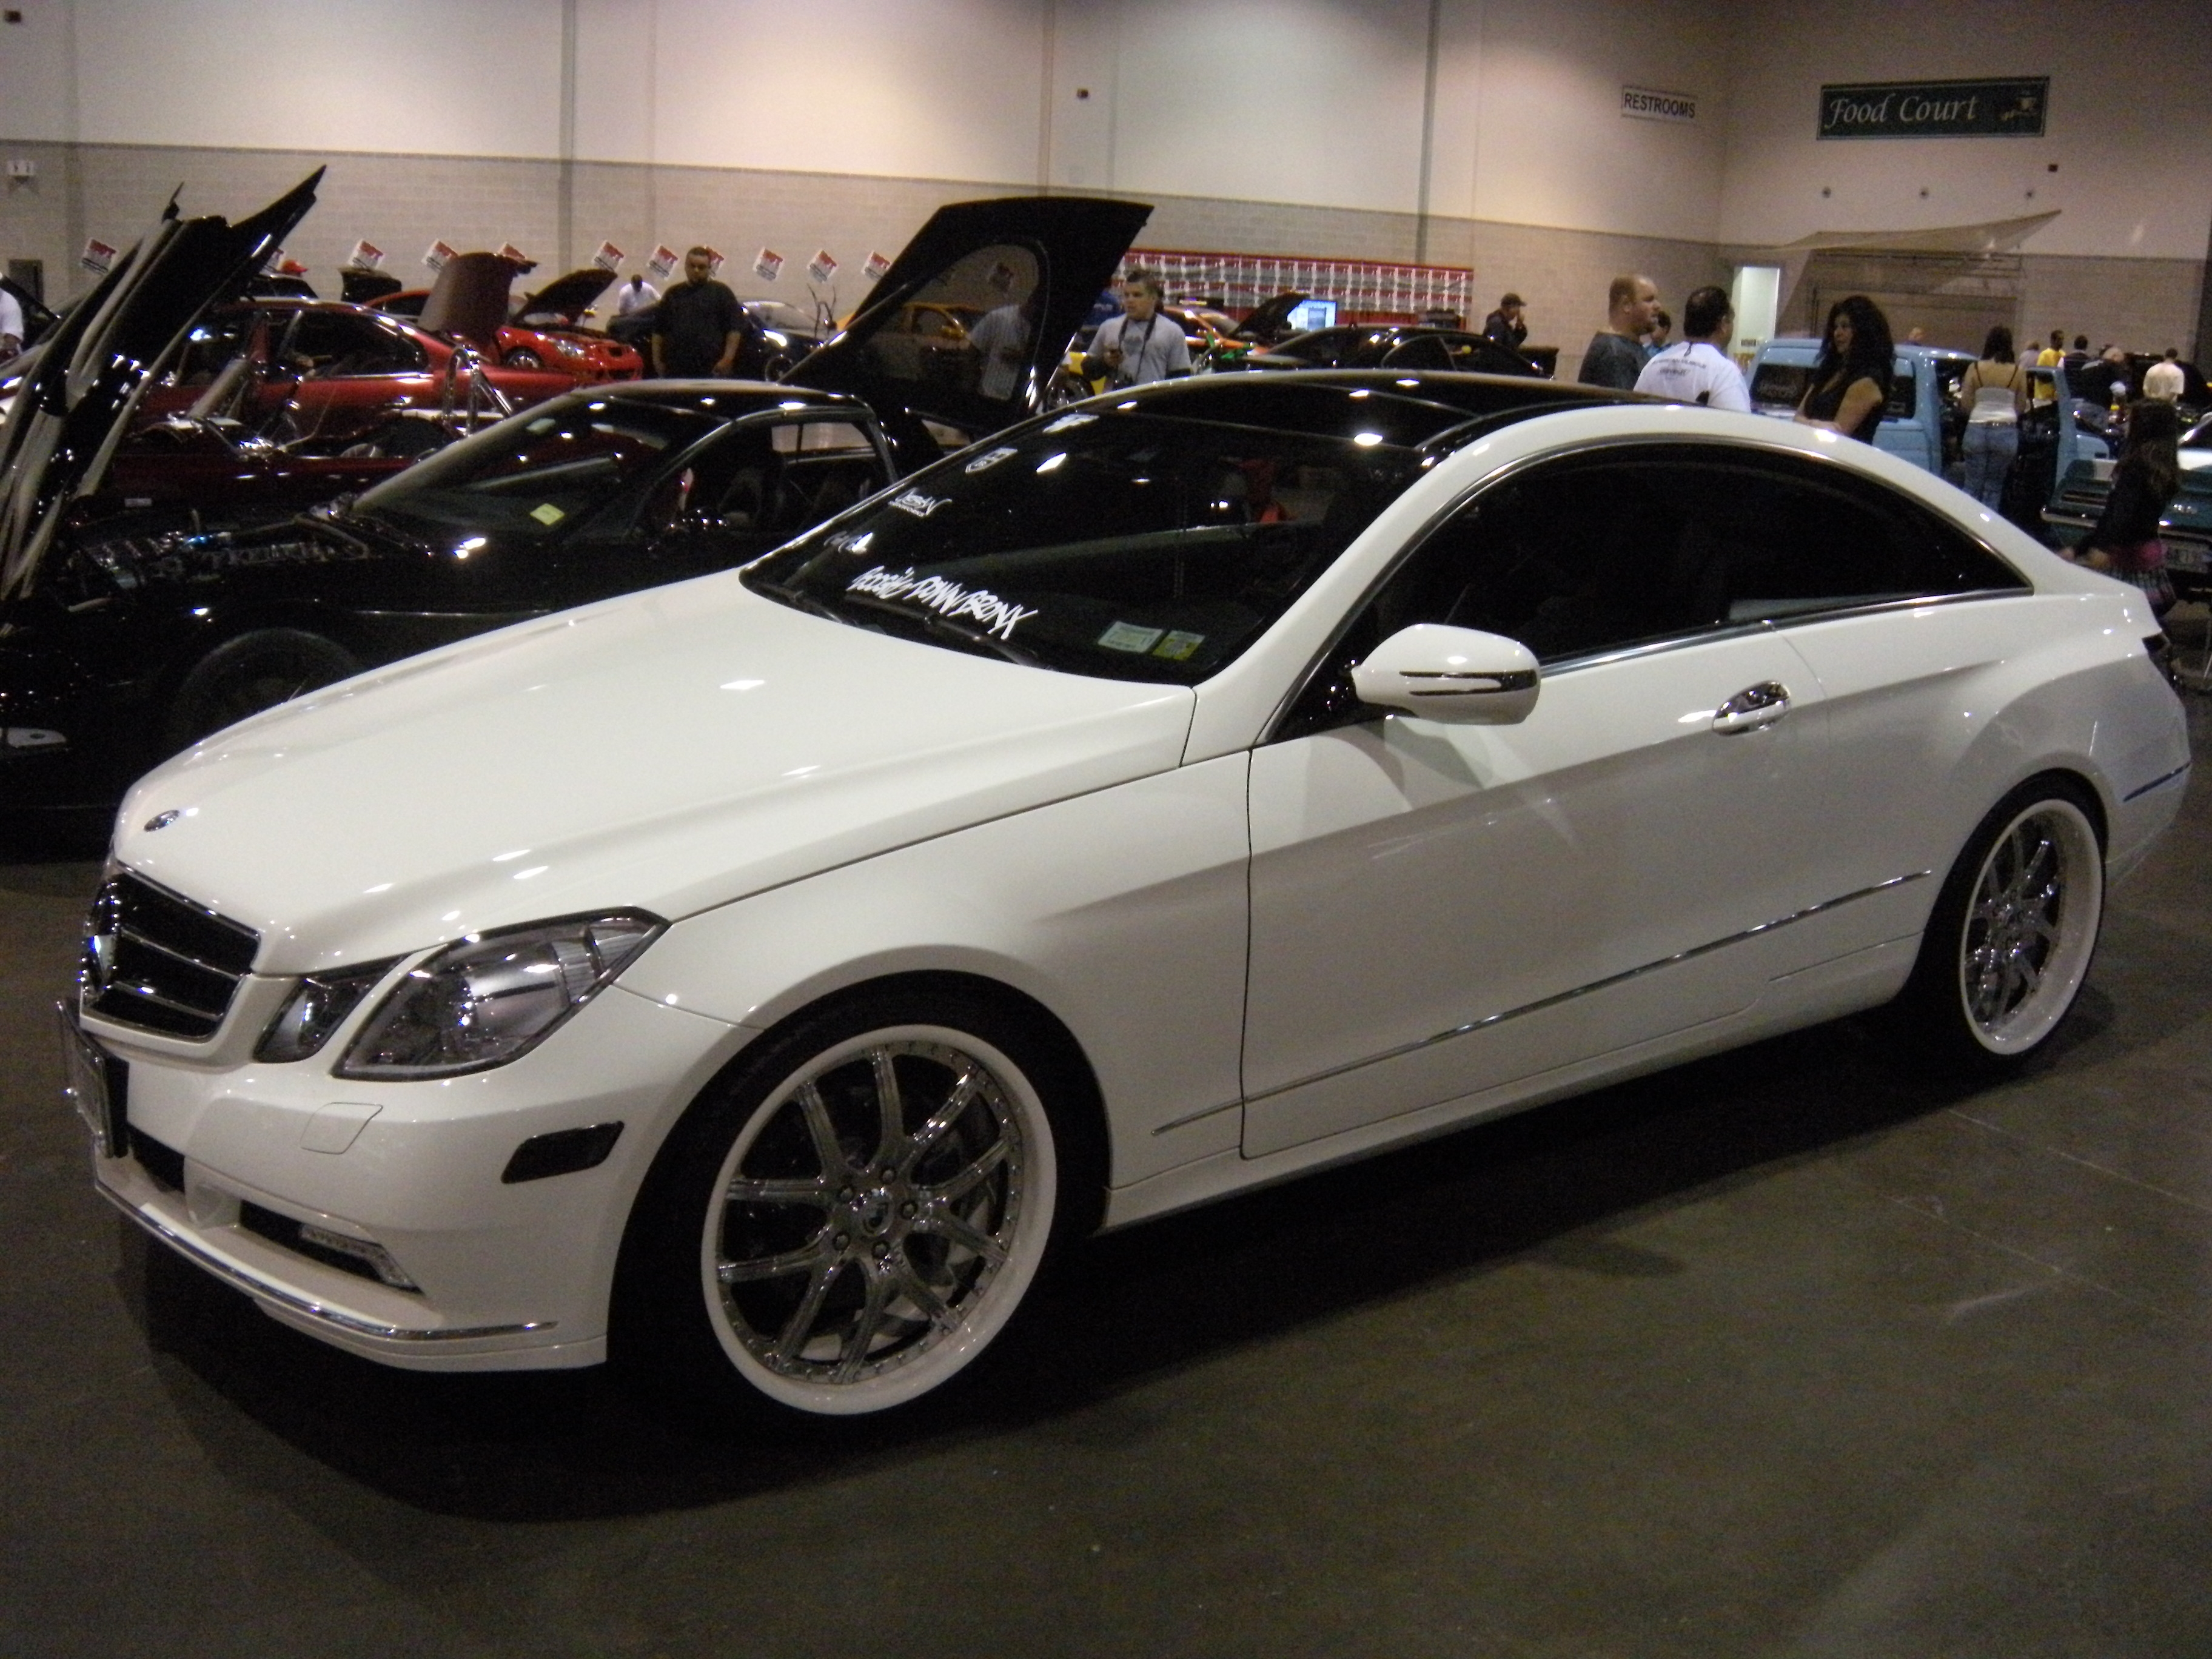 YoUnG_MoNeY_BX 2010 Mercedes-Benz E-Class 13358765